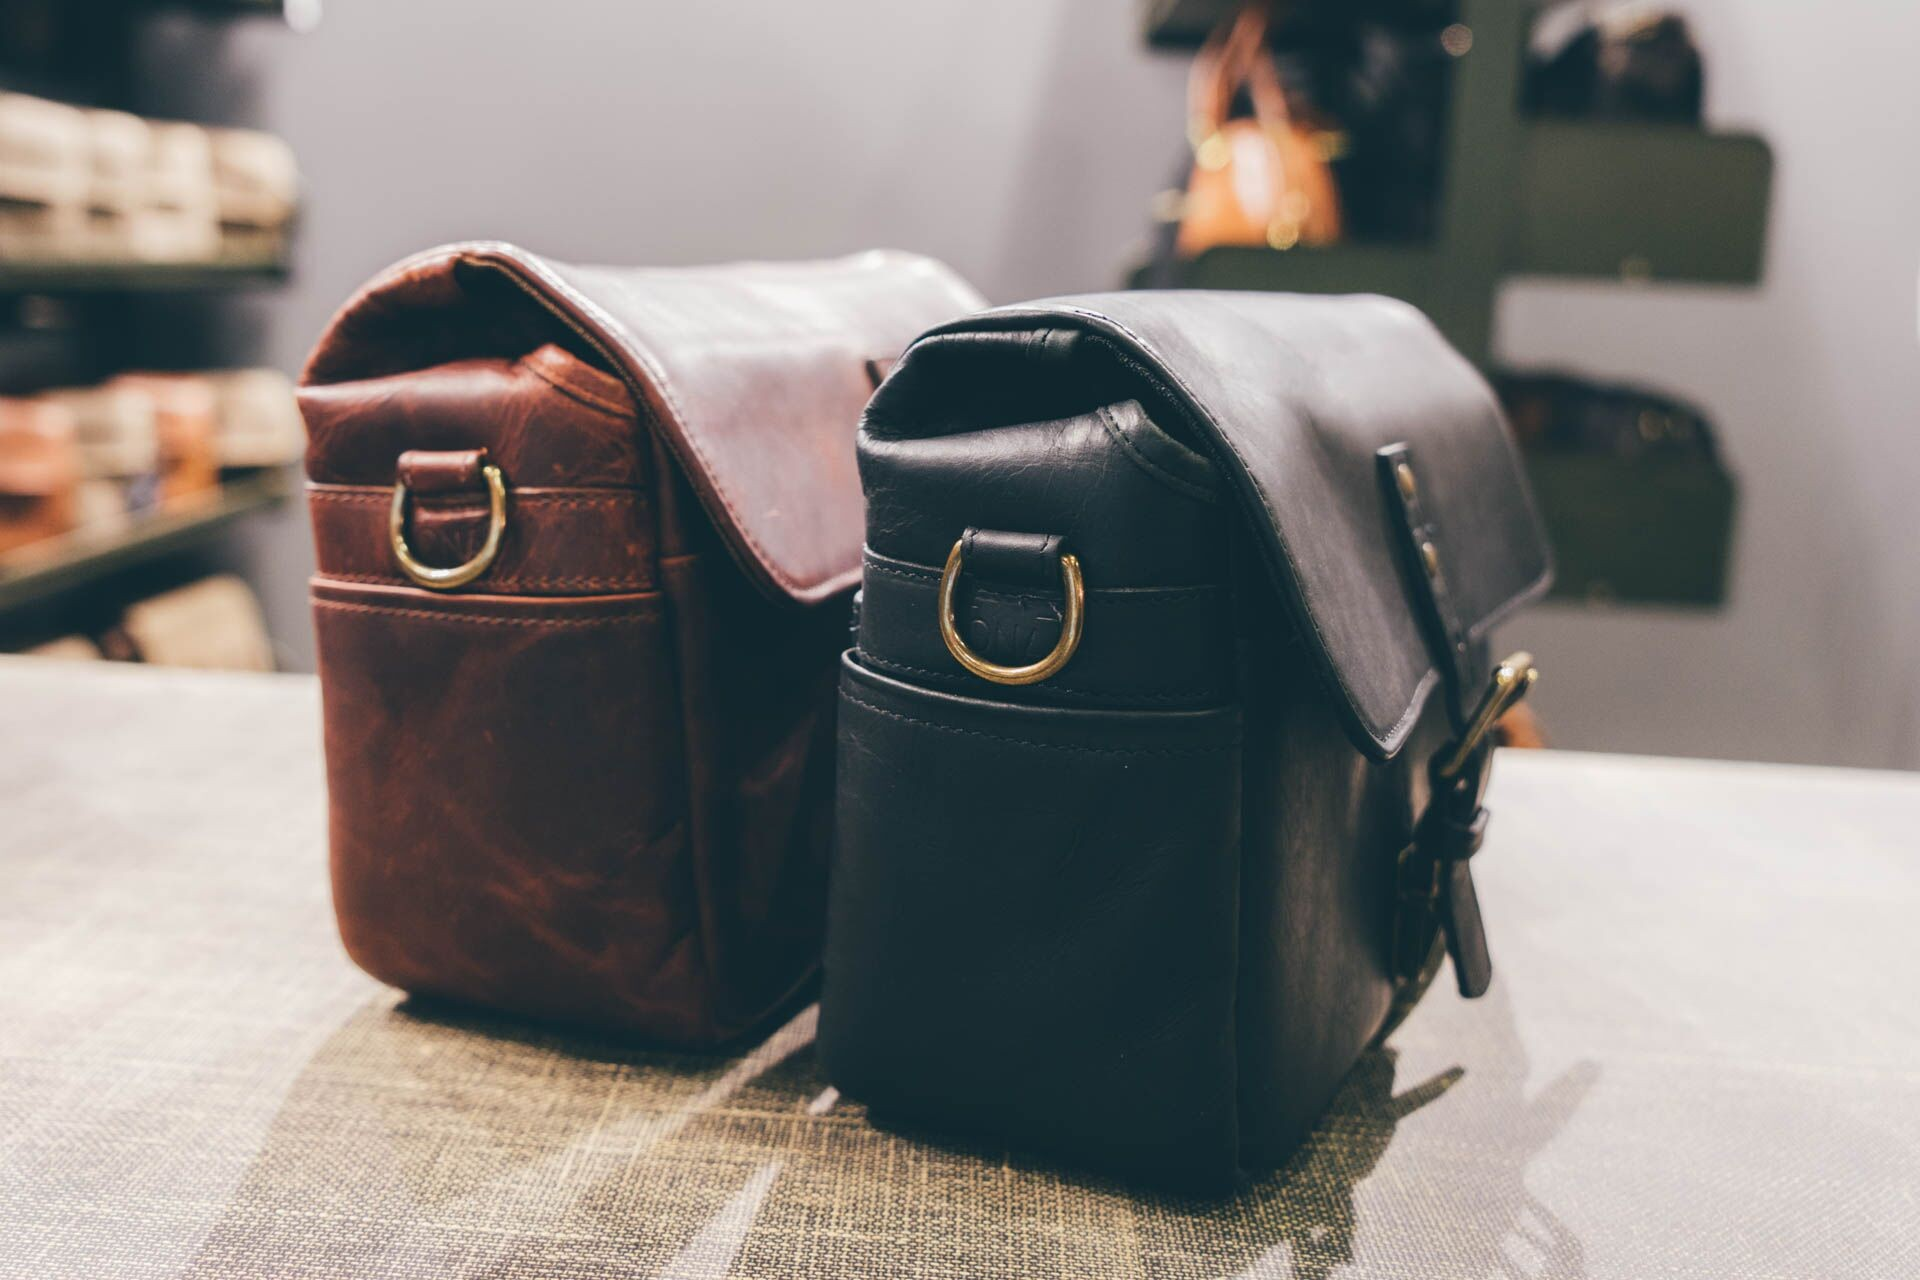 Besides black leather, ONA also released a [Bordeaux leather](https://www.amazon.com/ONA-Bowery-Leather-Camera-Bordeaux/dp/B01KCO6GVU/?tag=toolsandtoys-20) version of the Bowery. There's also an upcoming nylon model and a camouflage version.